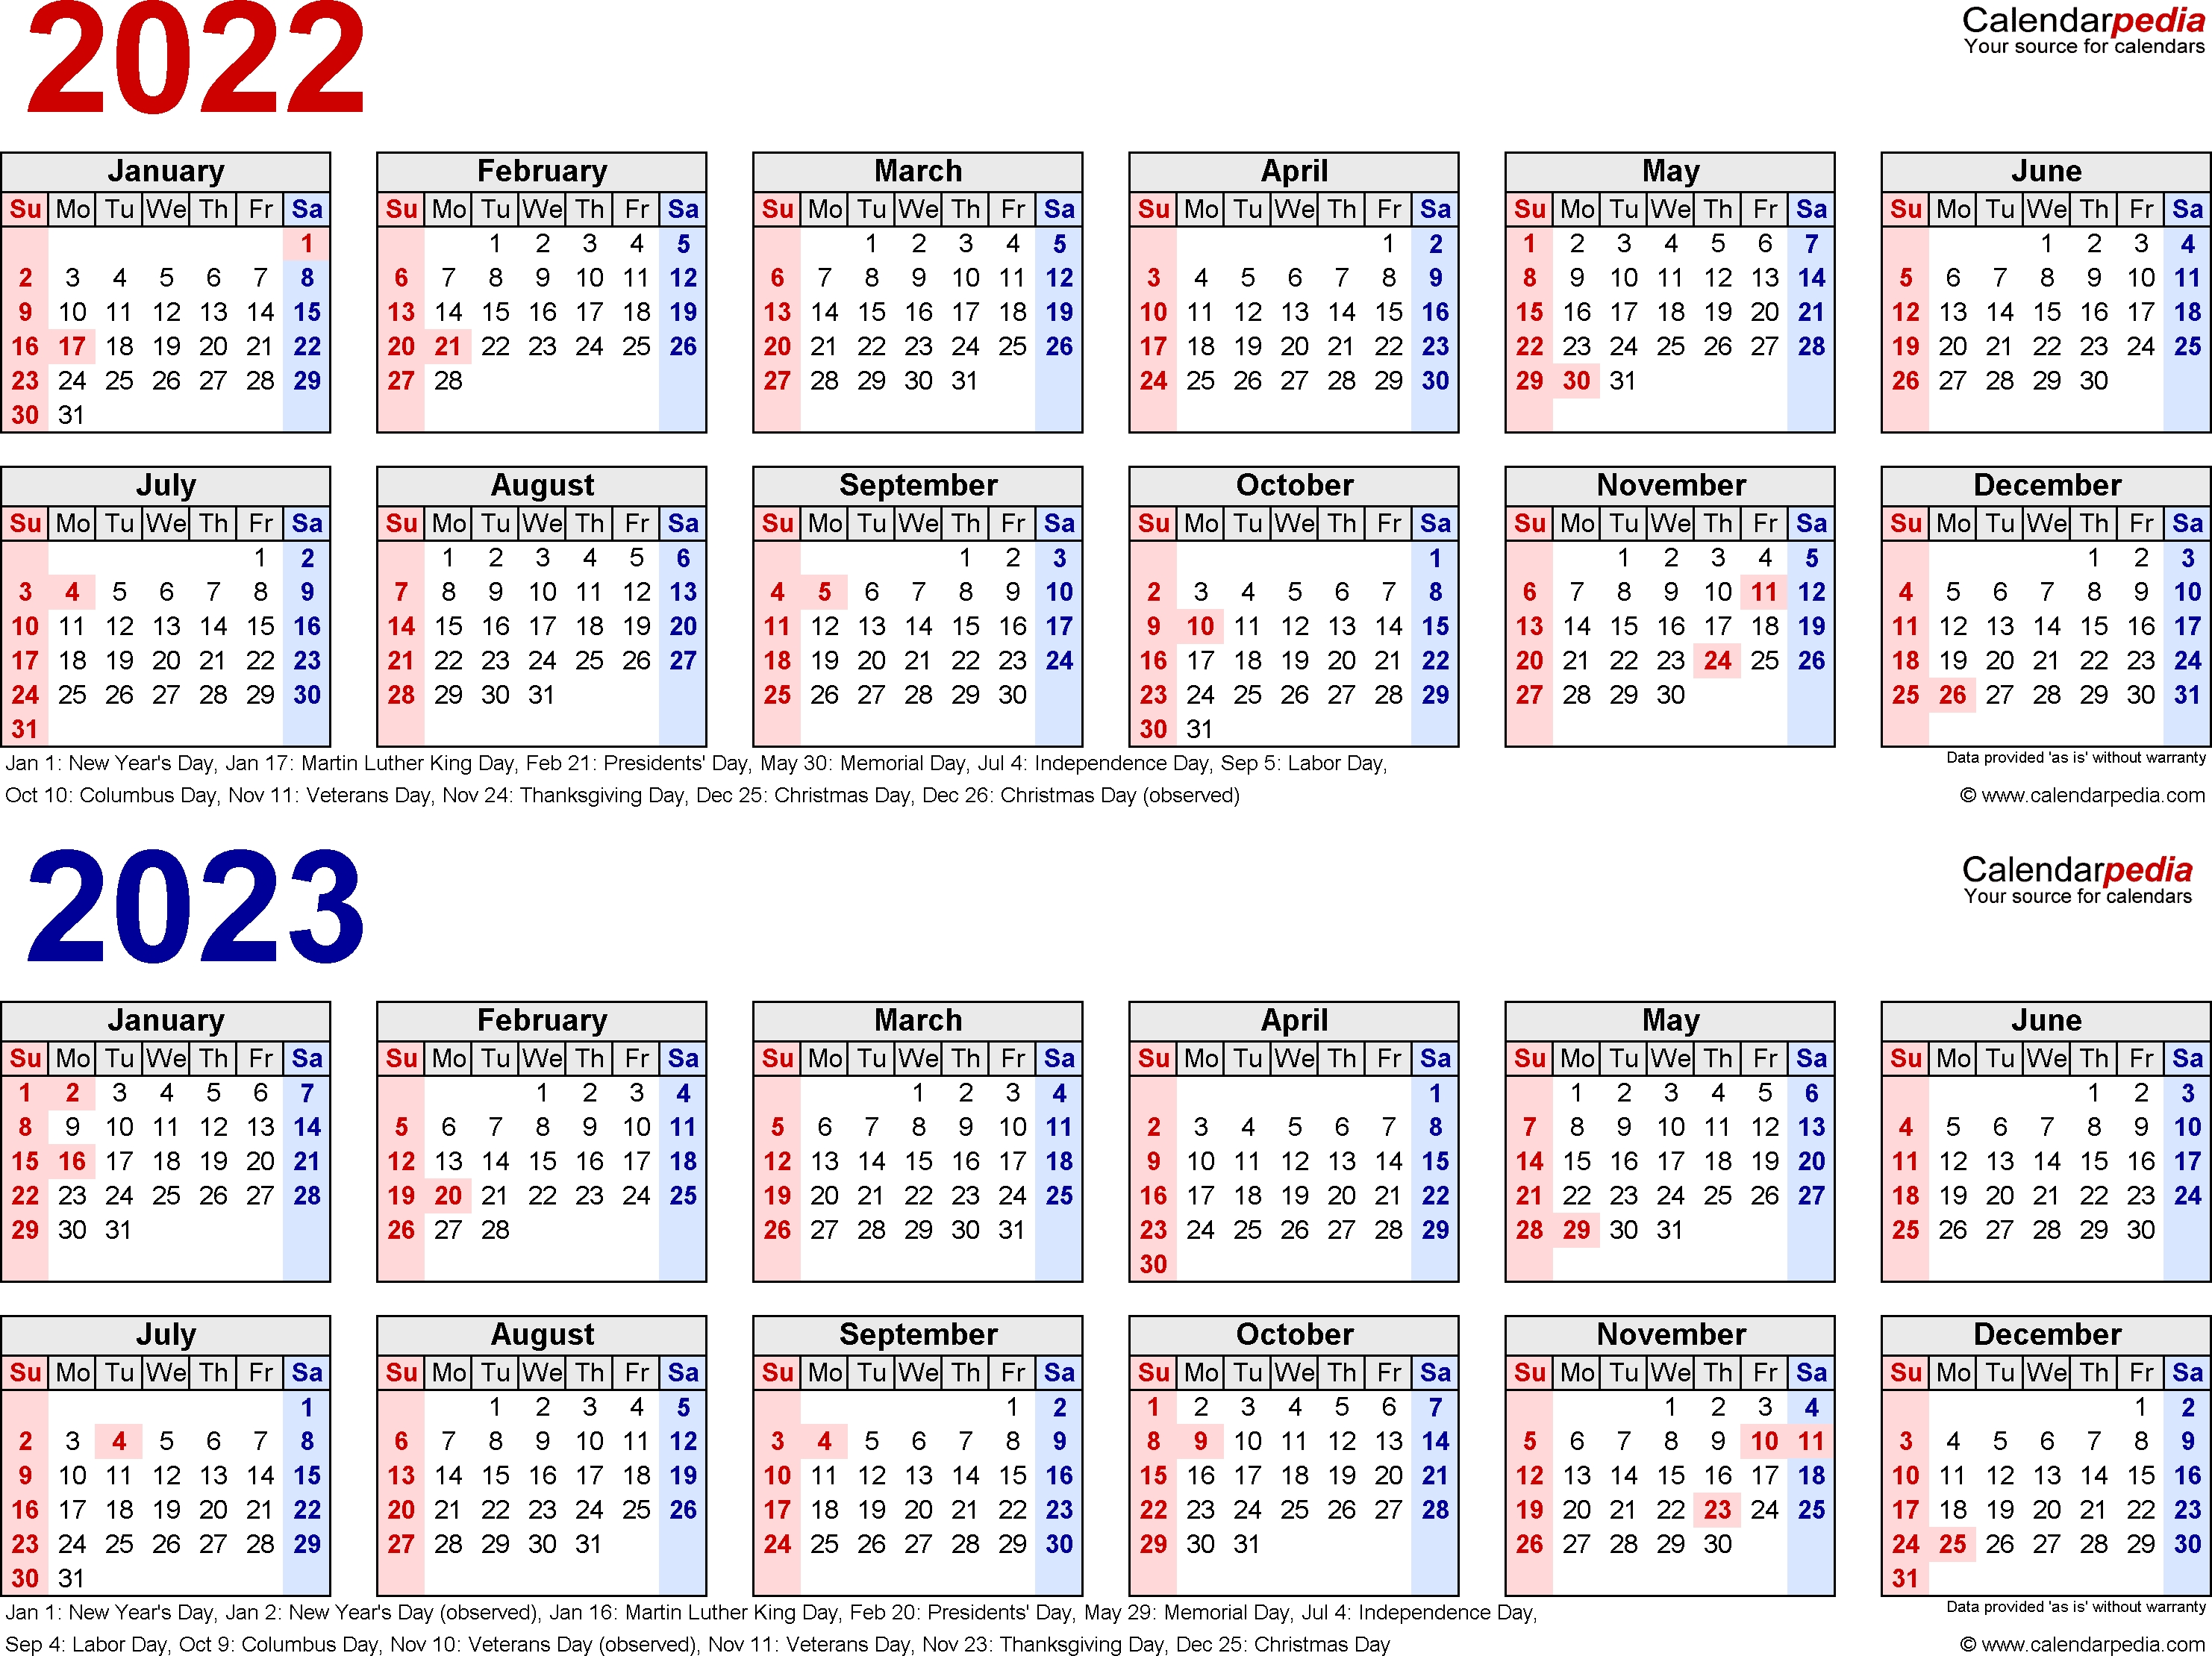 2022-2023 Calendar - Free Printable Two-Year Word Calendars within Blank Year Long Calendar 2022